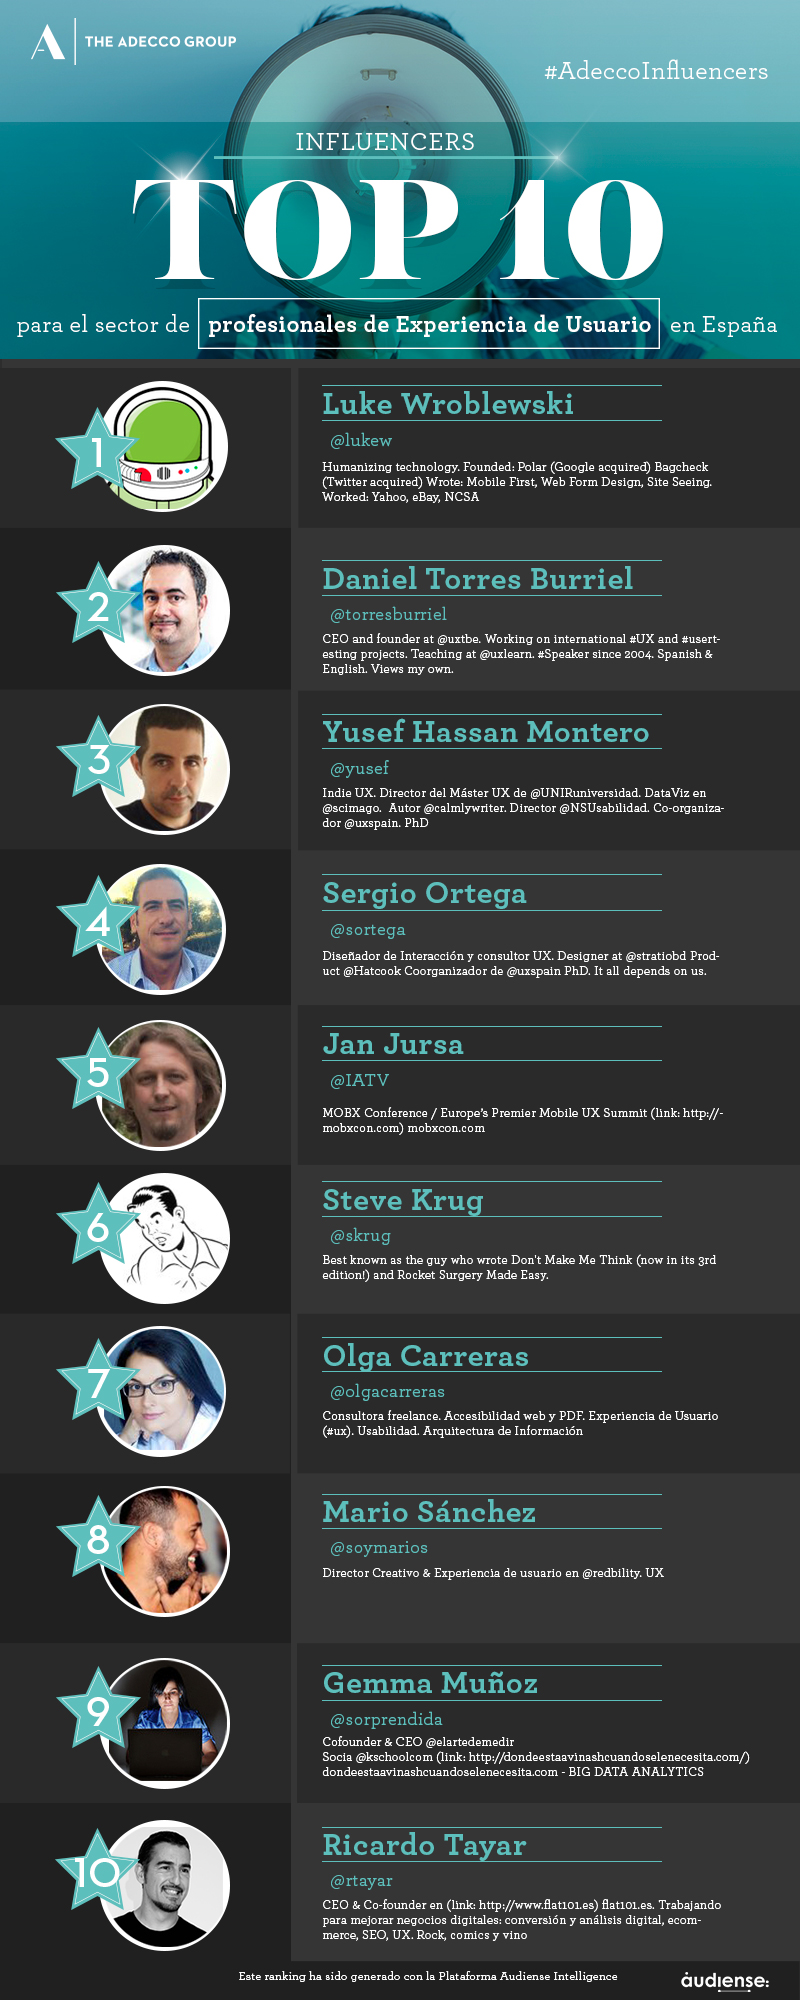 Top 10 influencers del sector Experiencia de Usuario en España